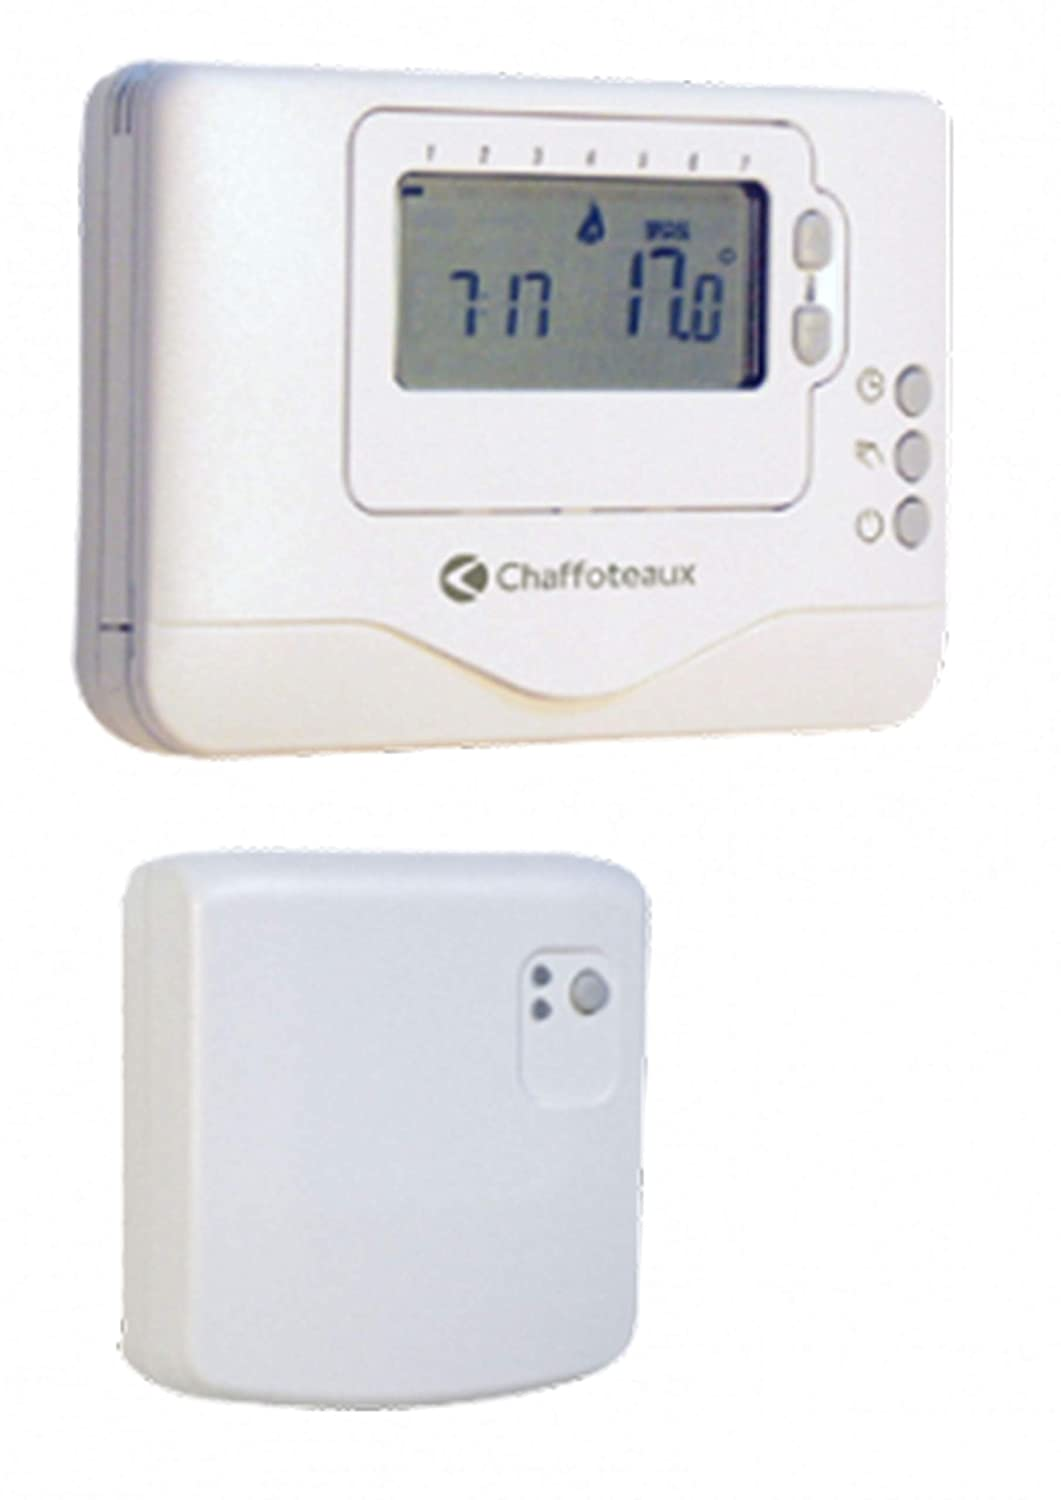 Chaffoteaux–équipement thermo réglages on/off Easy Control